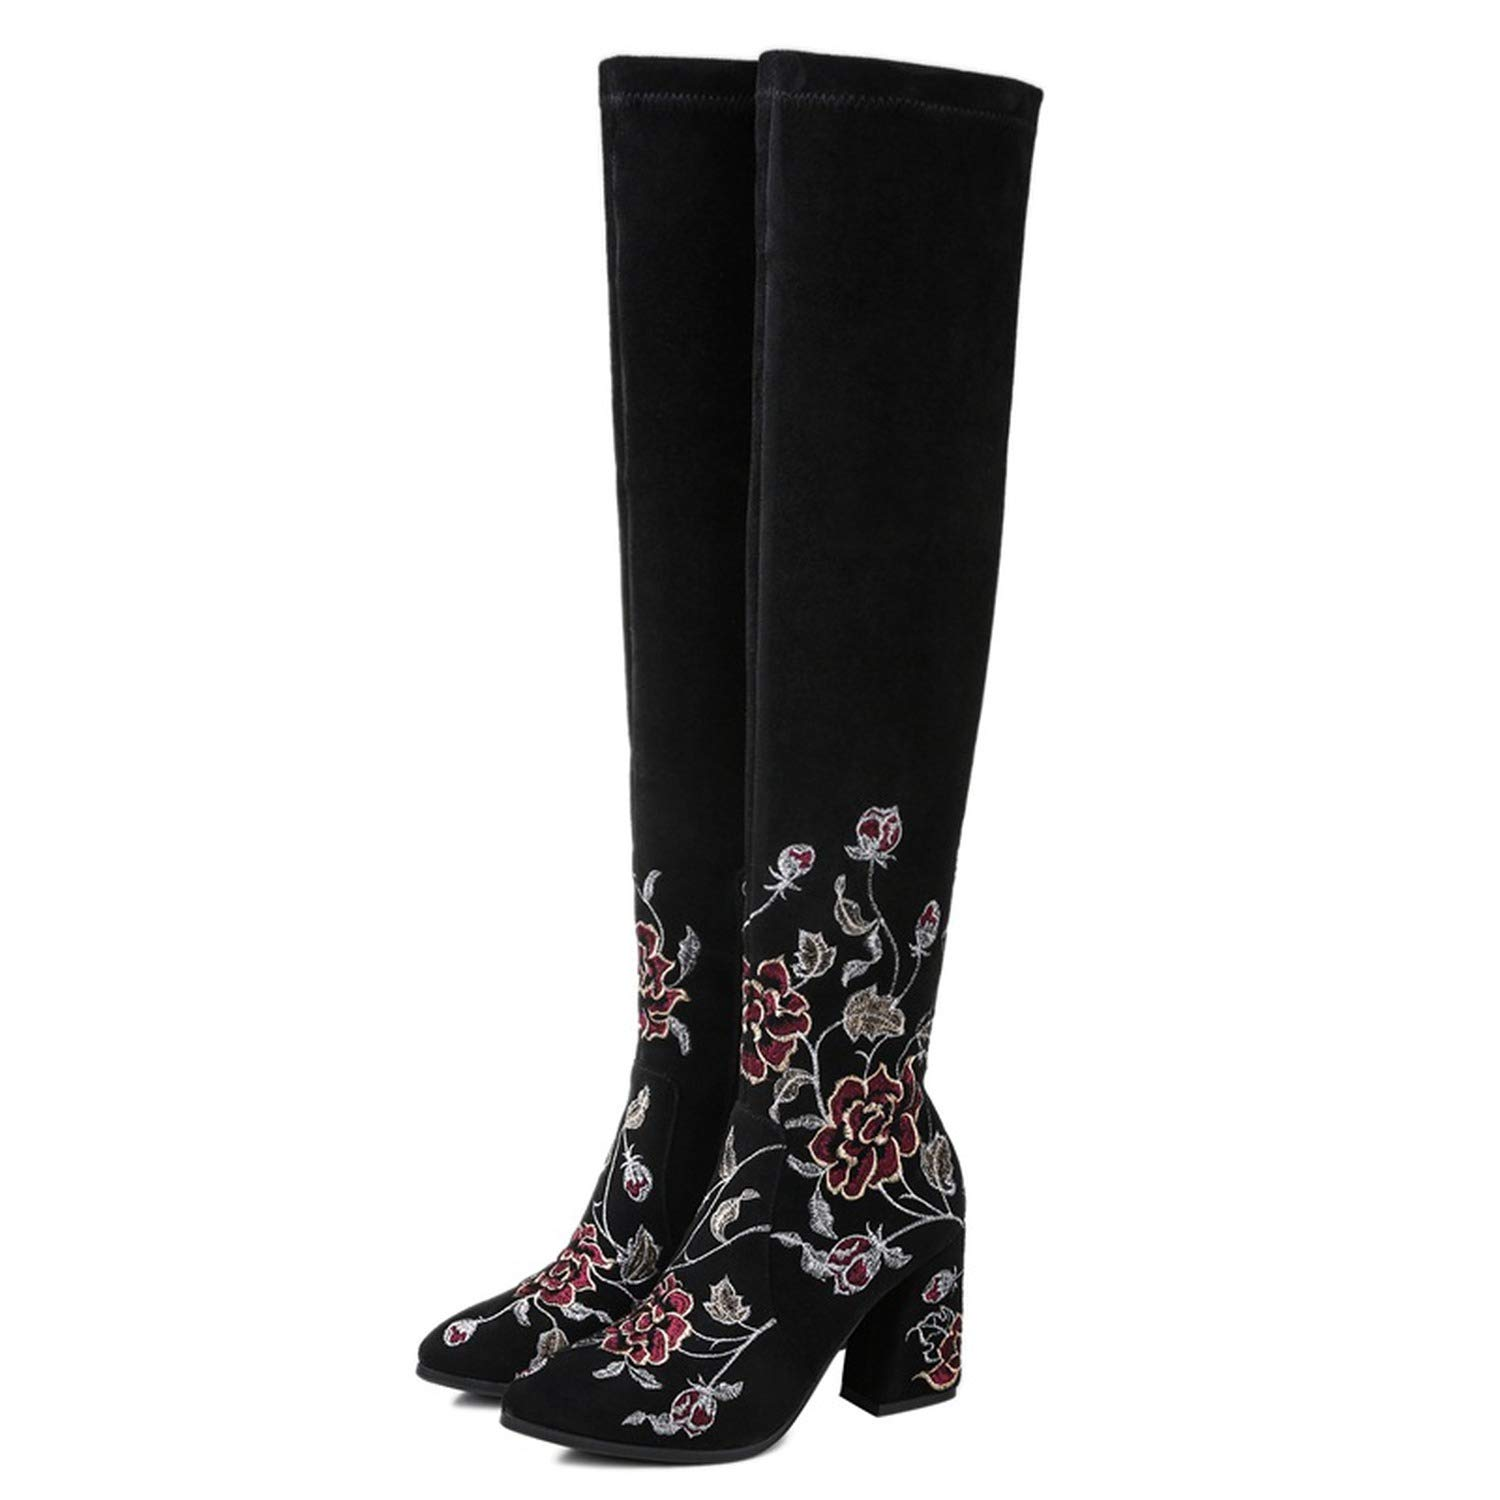 Good-Memories Large Size High Boots Round Toe Thick Heel Ladies Knee Women Shoes Side Zipper Cow Suede Upper Embroider Spring Boots,